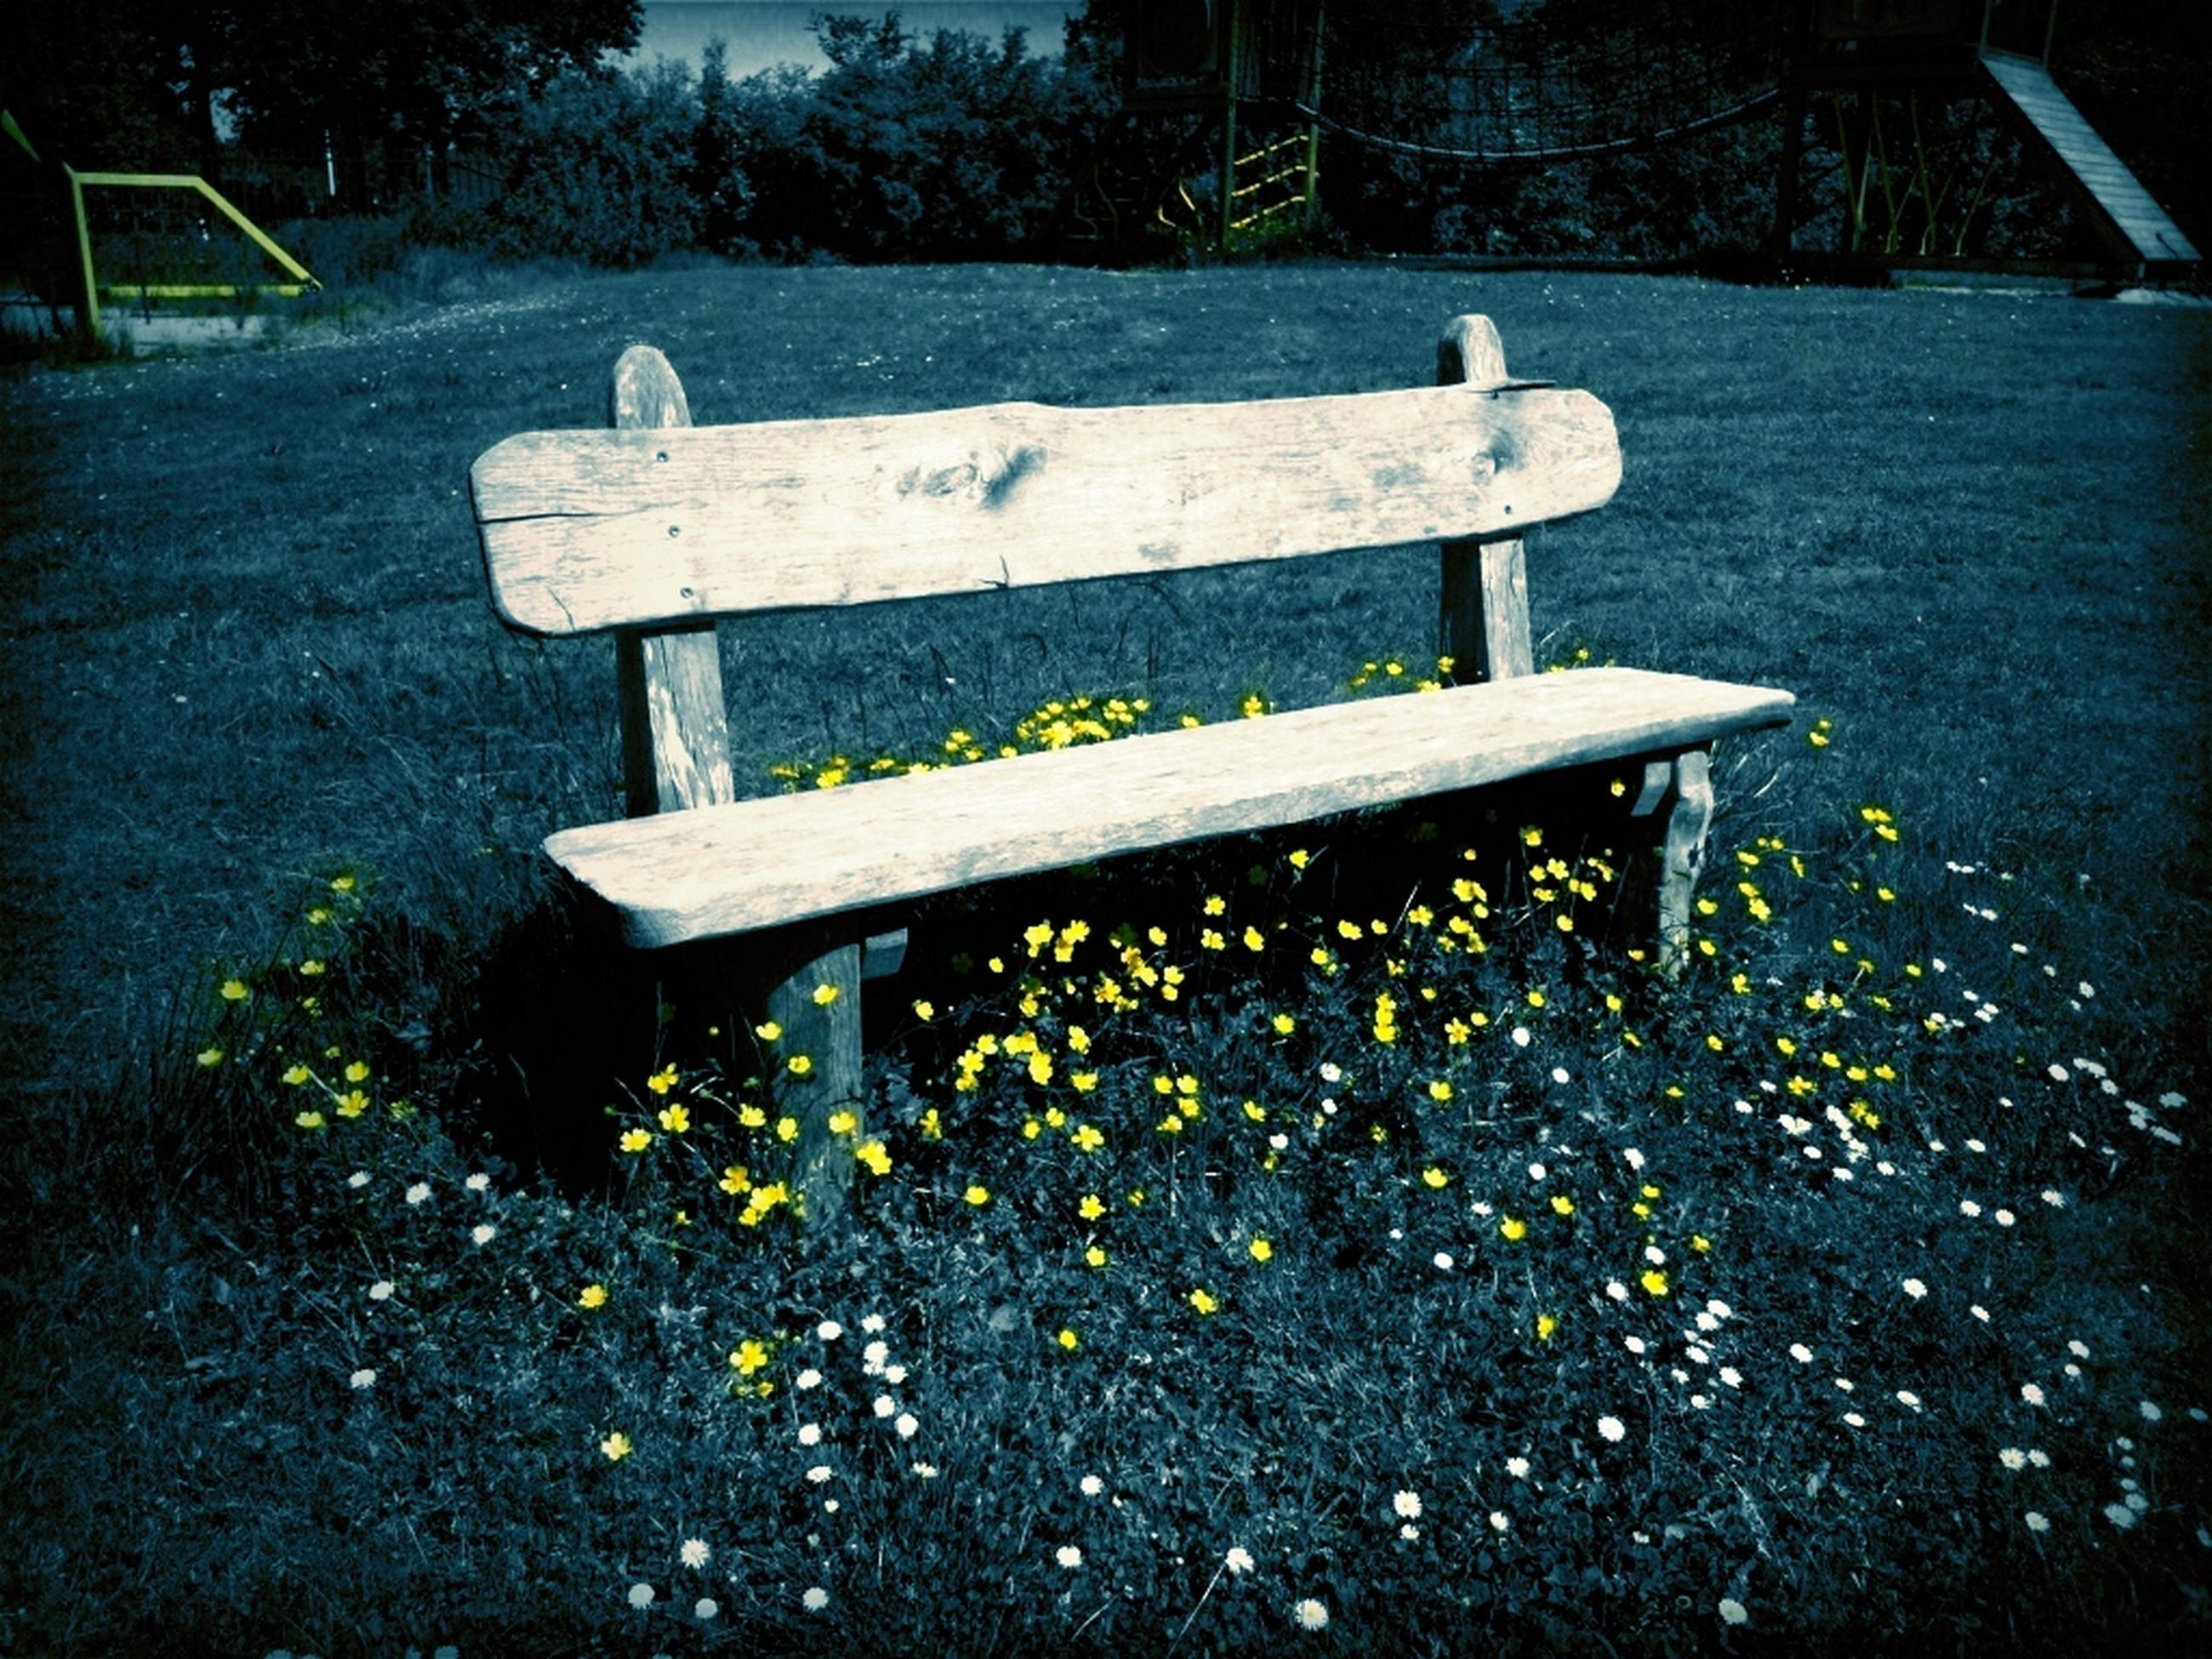 bench, empty, park bench, wood - material, tranquility, park - man made space, absence, grass, wooden, nature, seat, wood, tranquil scene, tree, outdoors, day, no people, park, plant, sunlight